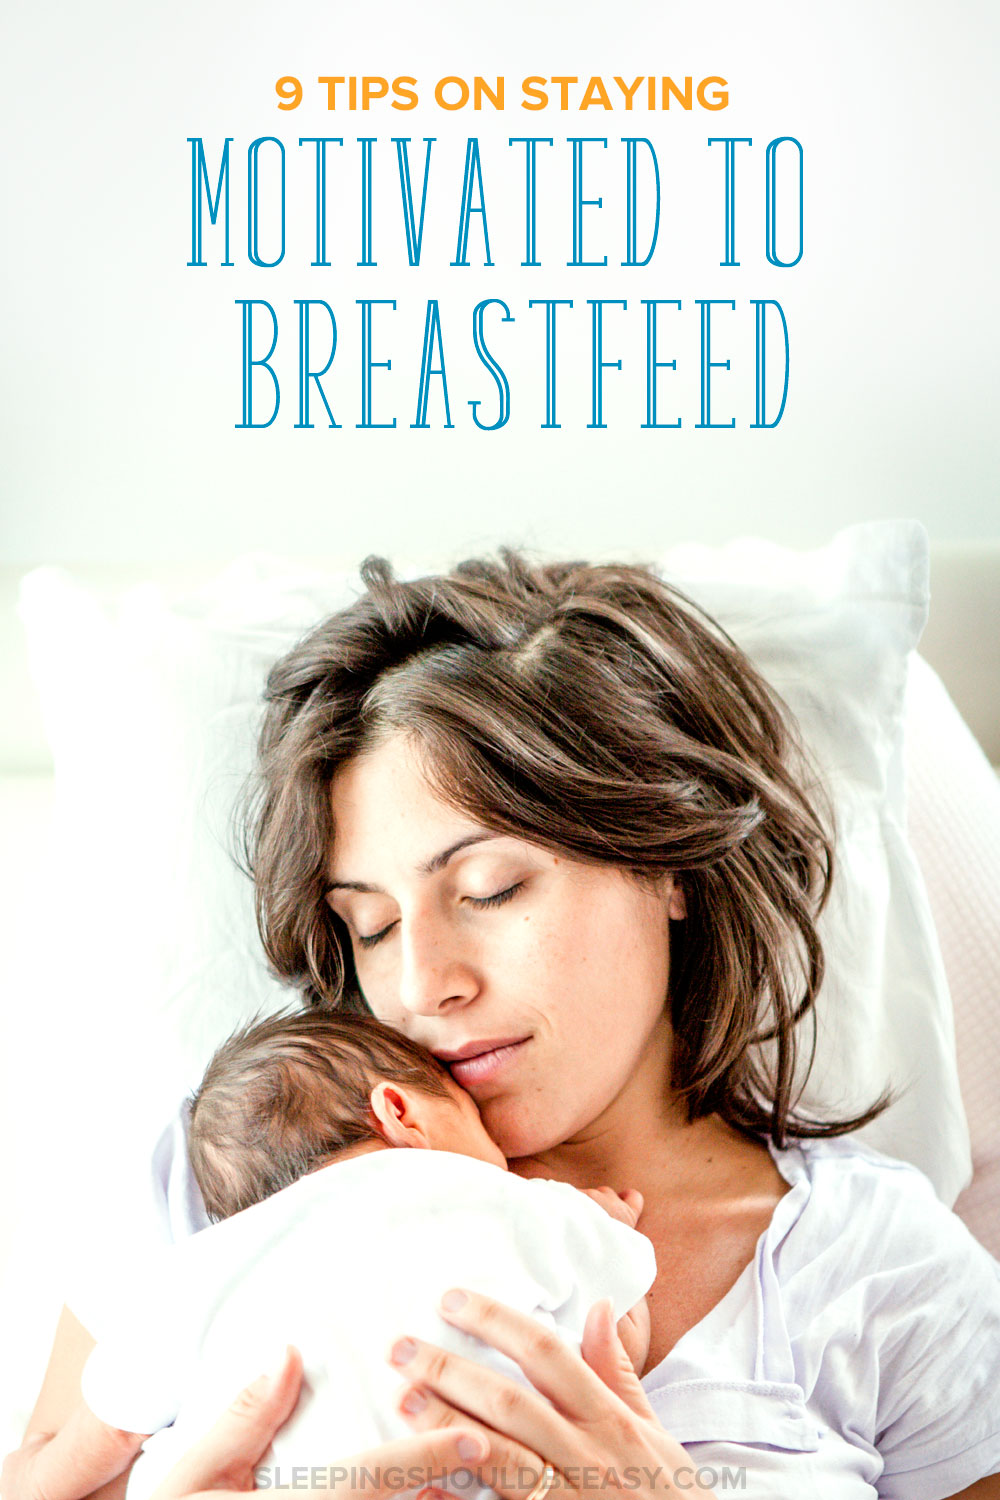 Breastfeeding can take you by surprise and even discourage you from continuing. Here are 9 tips on breastfeeding motivation to keep you going.